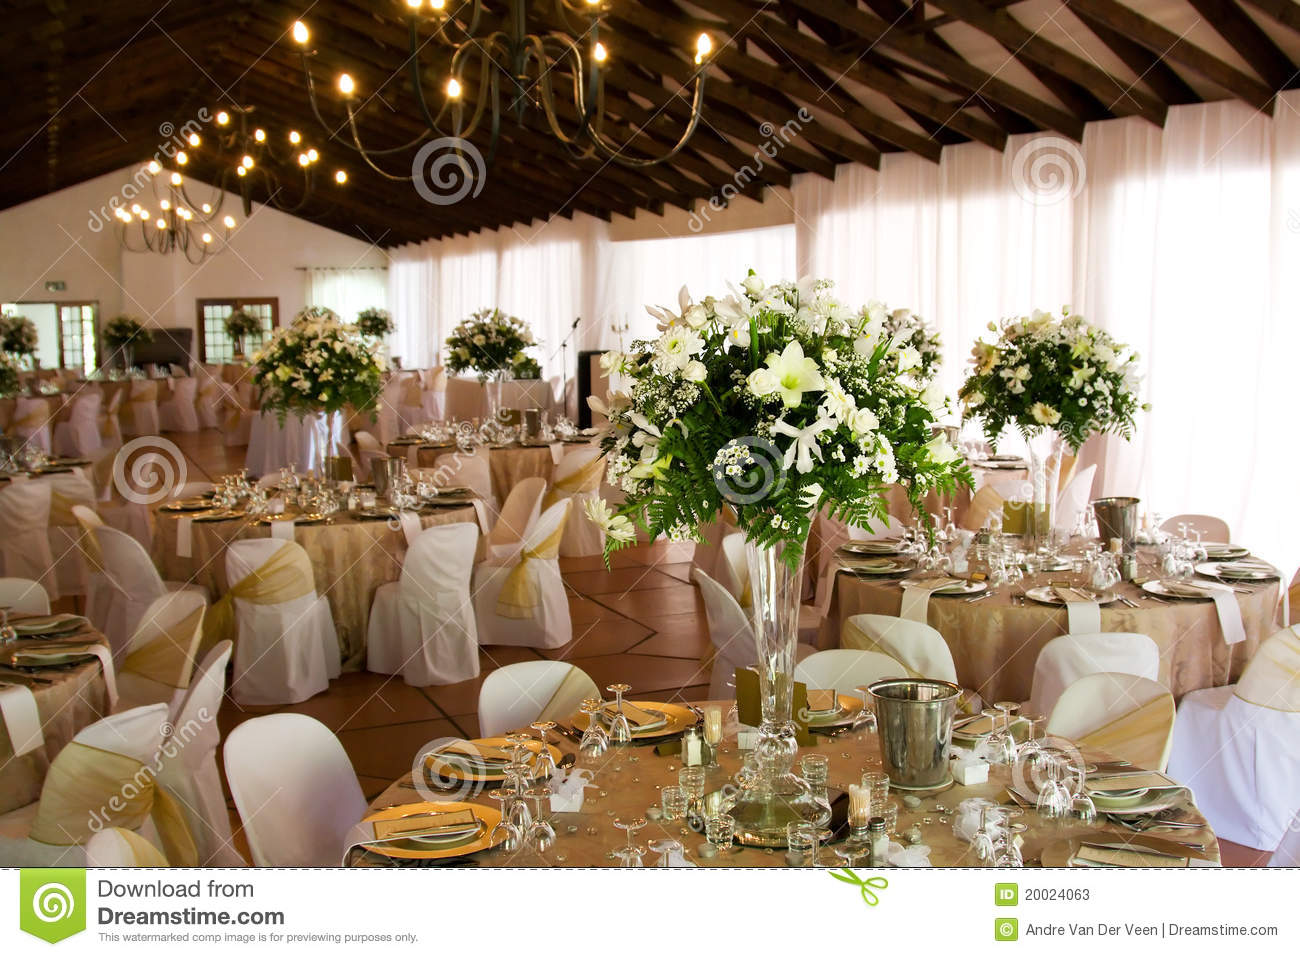 Indoors wedding reception venue with decor stock image image indoors wedding reception venue with decor junglespirit Images